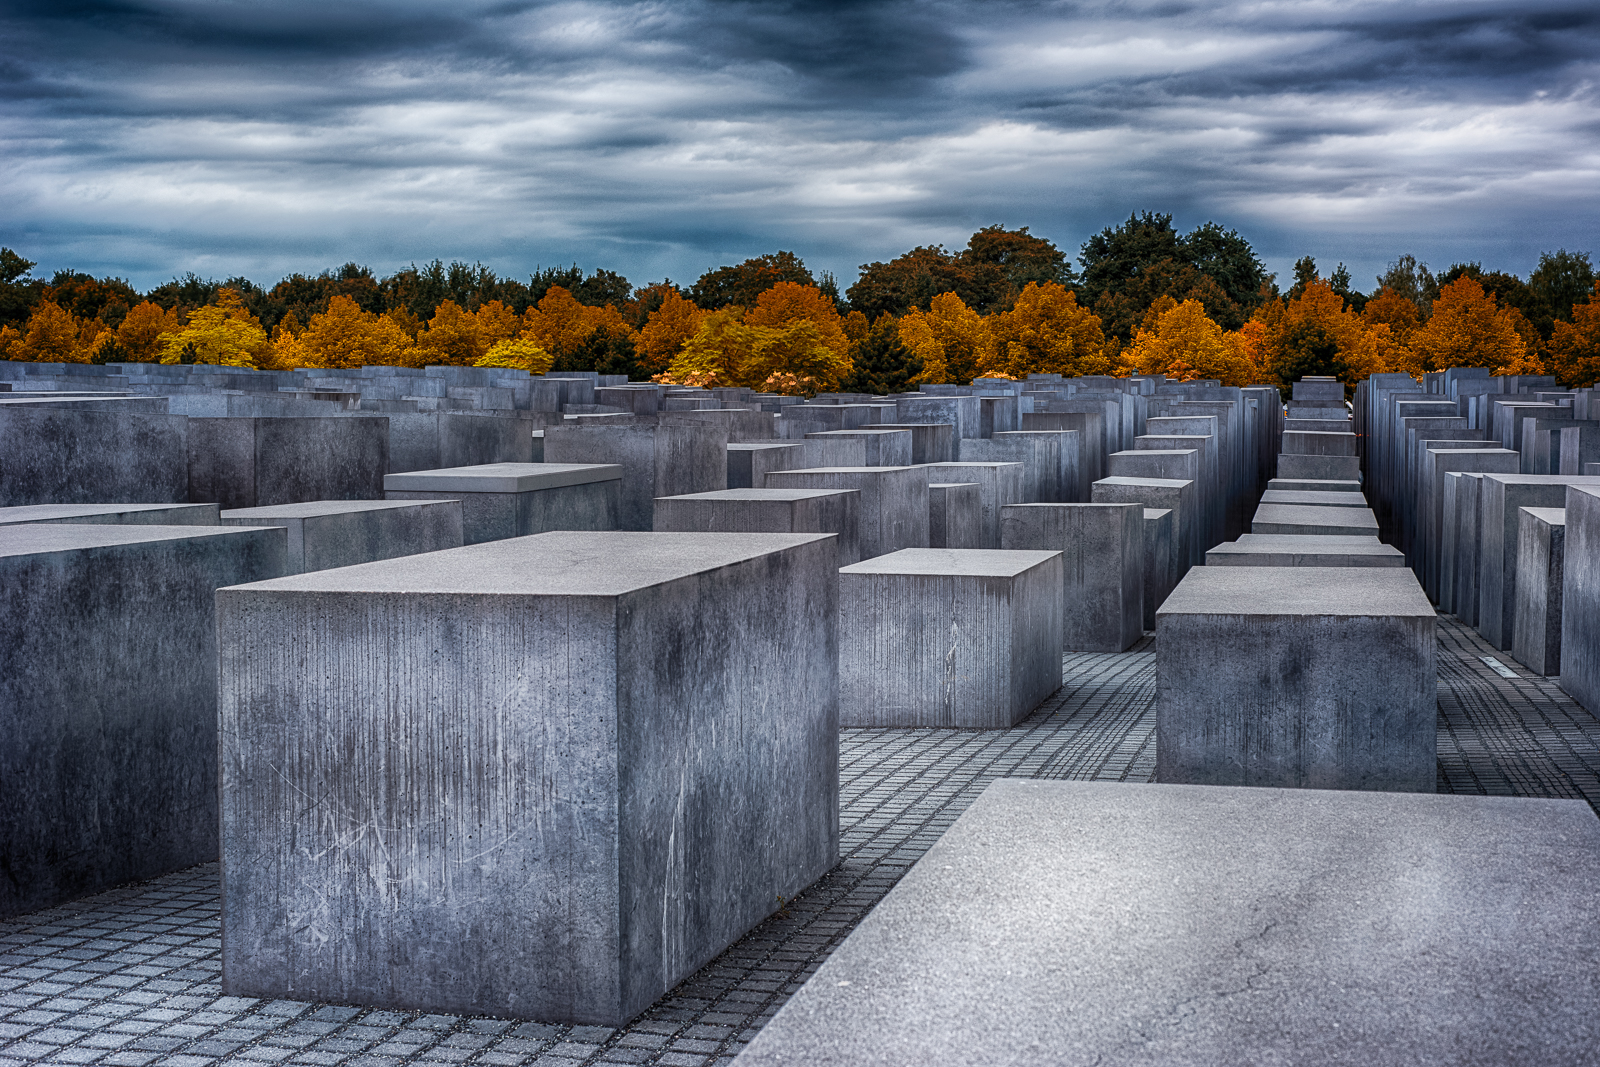 holocaust memorial in Berlin - image by artist Ali Ertürk